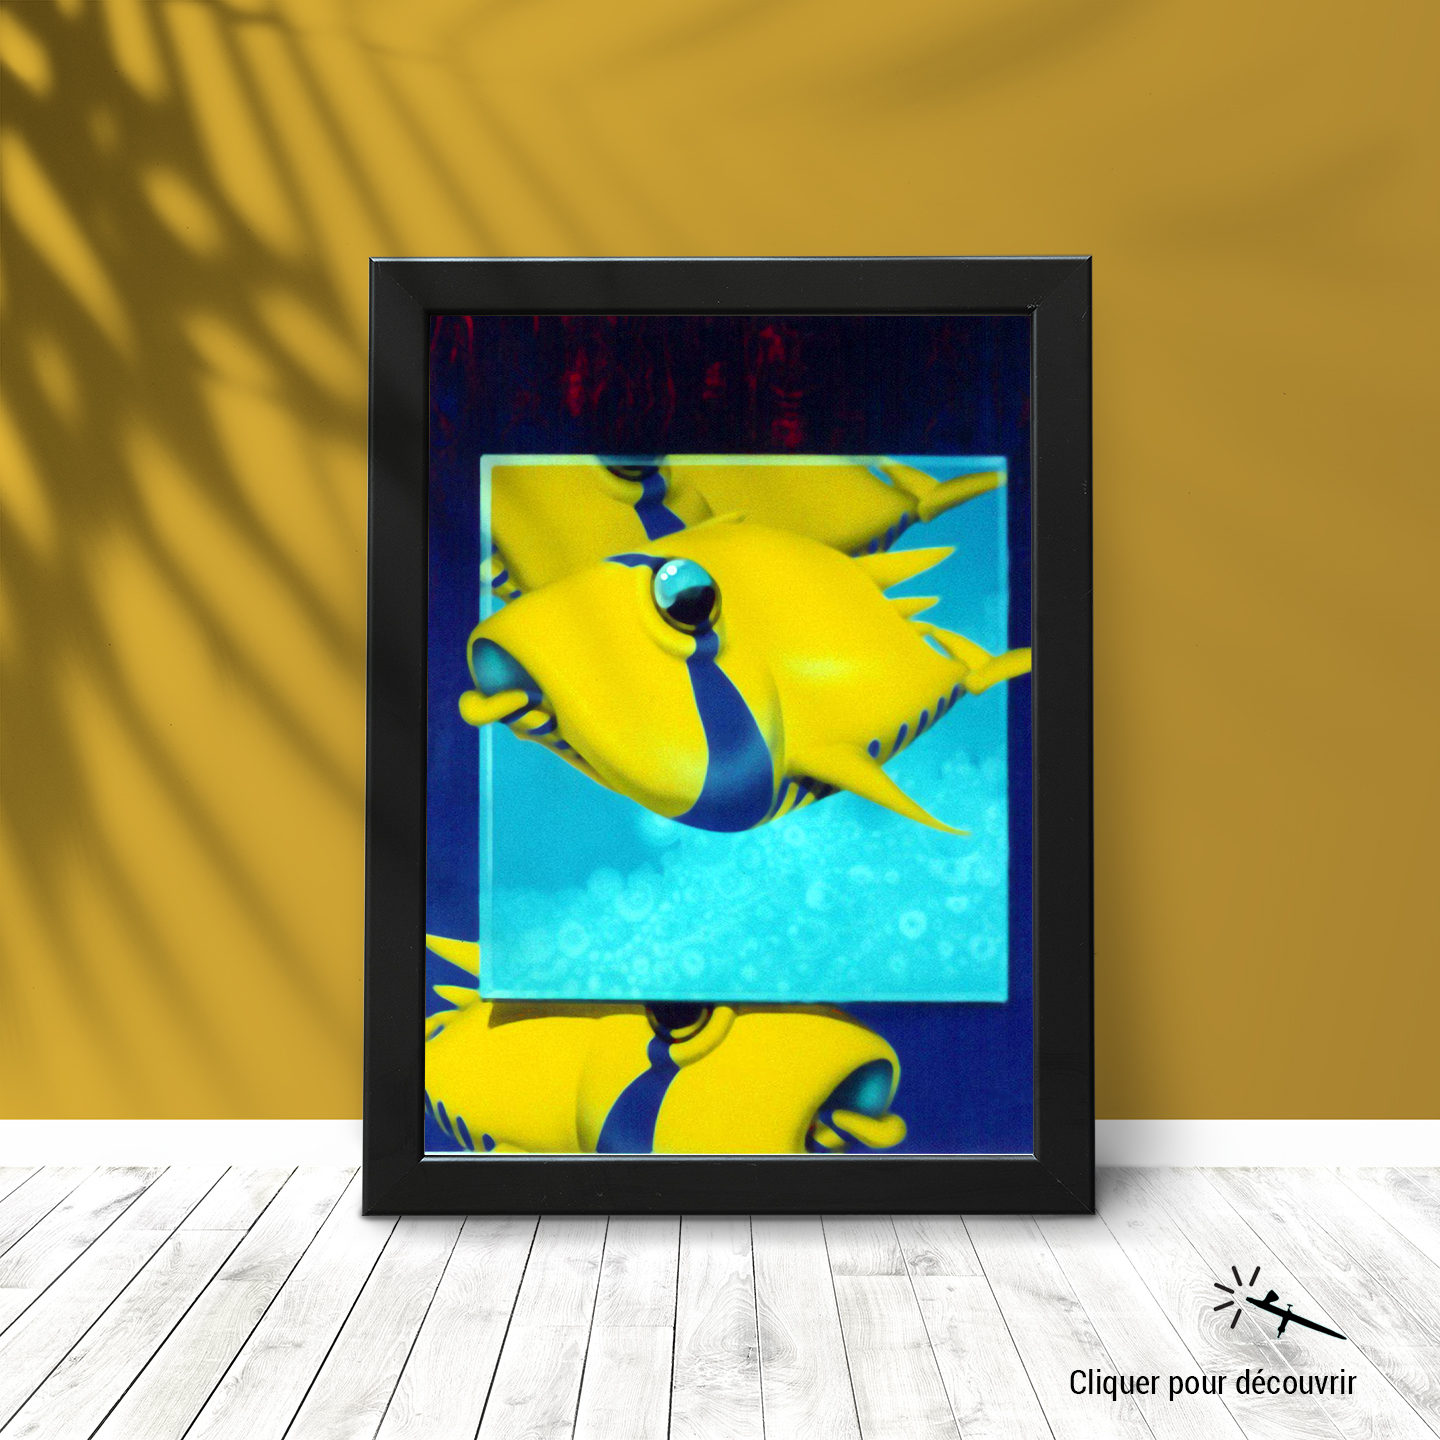 Frame by a yellow wall